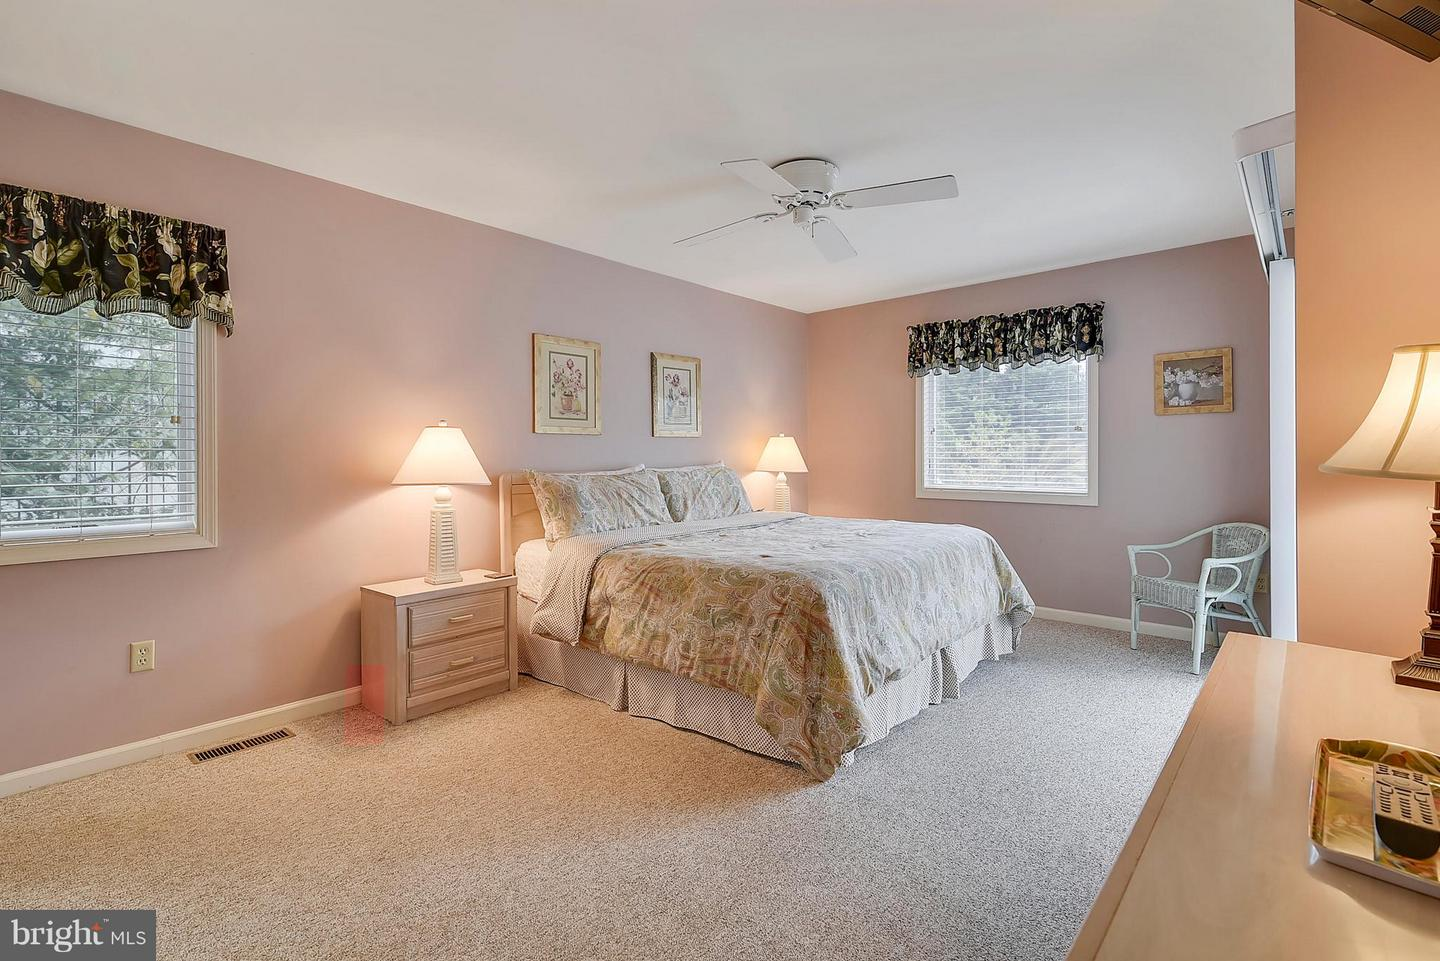 1002344128-300986985018-2018-11-07-14-16-58 39634 Seatrout Cir | North Bethany, DE Real Estate For Sale | MLS# 1002344128  - 1st Choice Properties